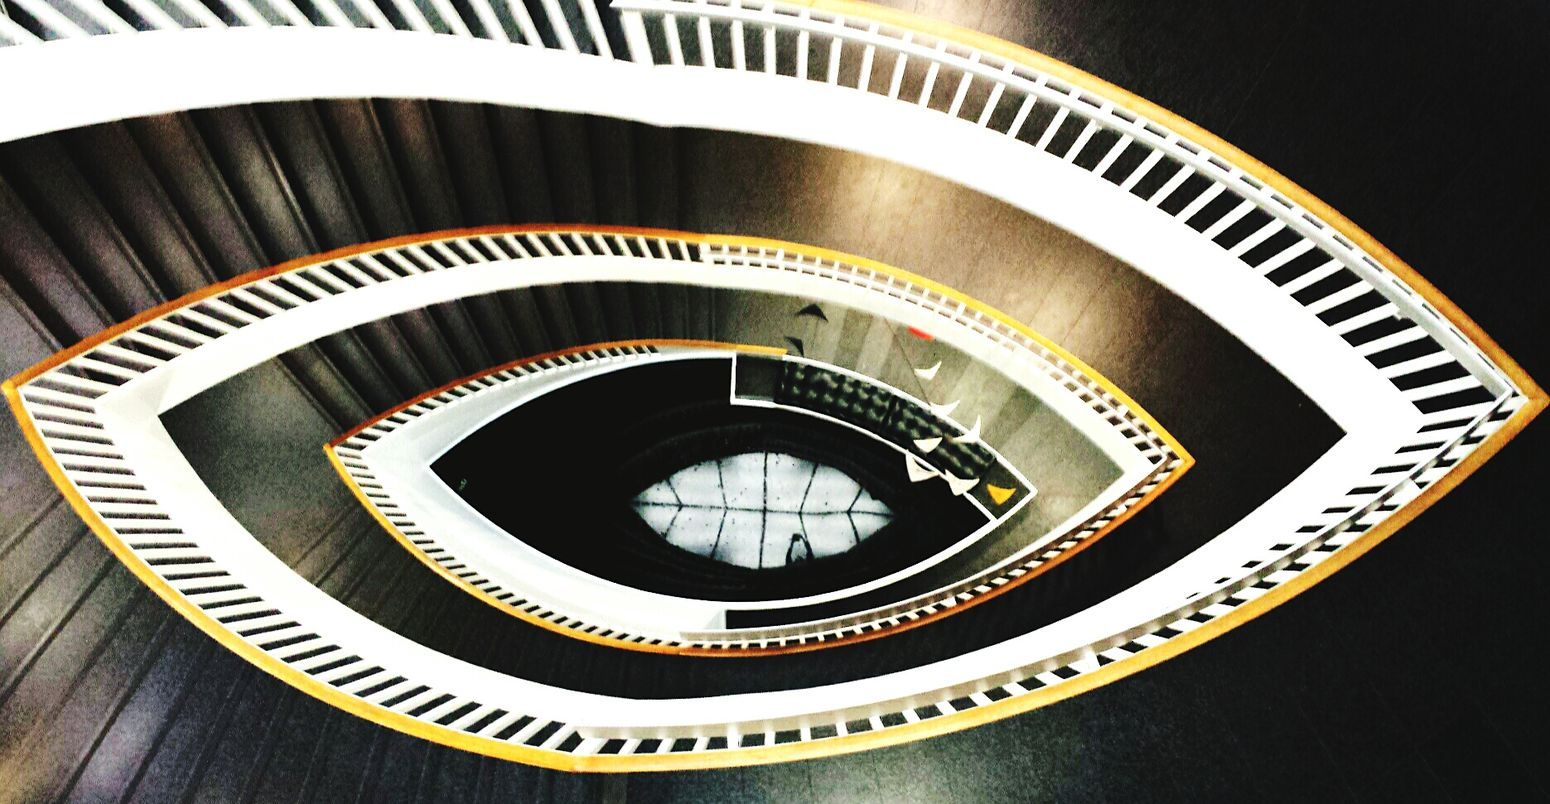 Awesome Staircase In Chicago 💖 Chicago Architecture Chicago Architecture  Architectural Detail EyeEm Masterclass Mobilephotography Check This